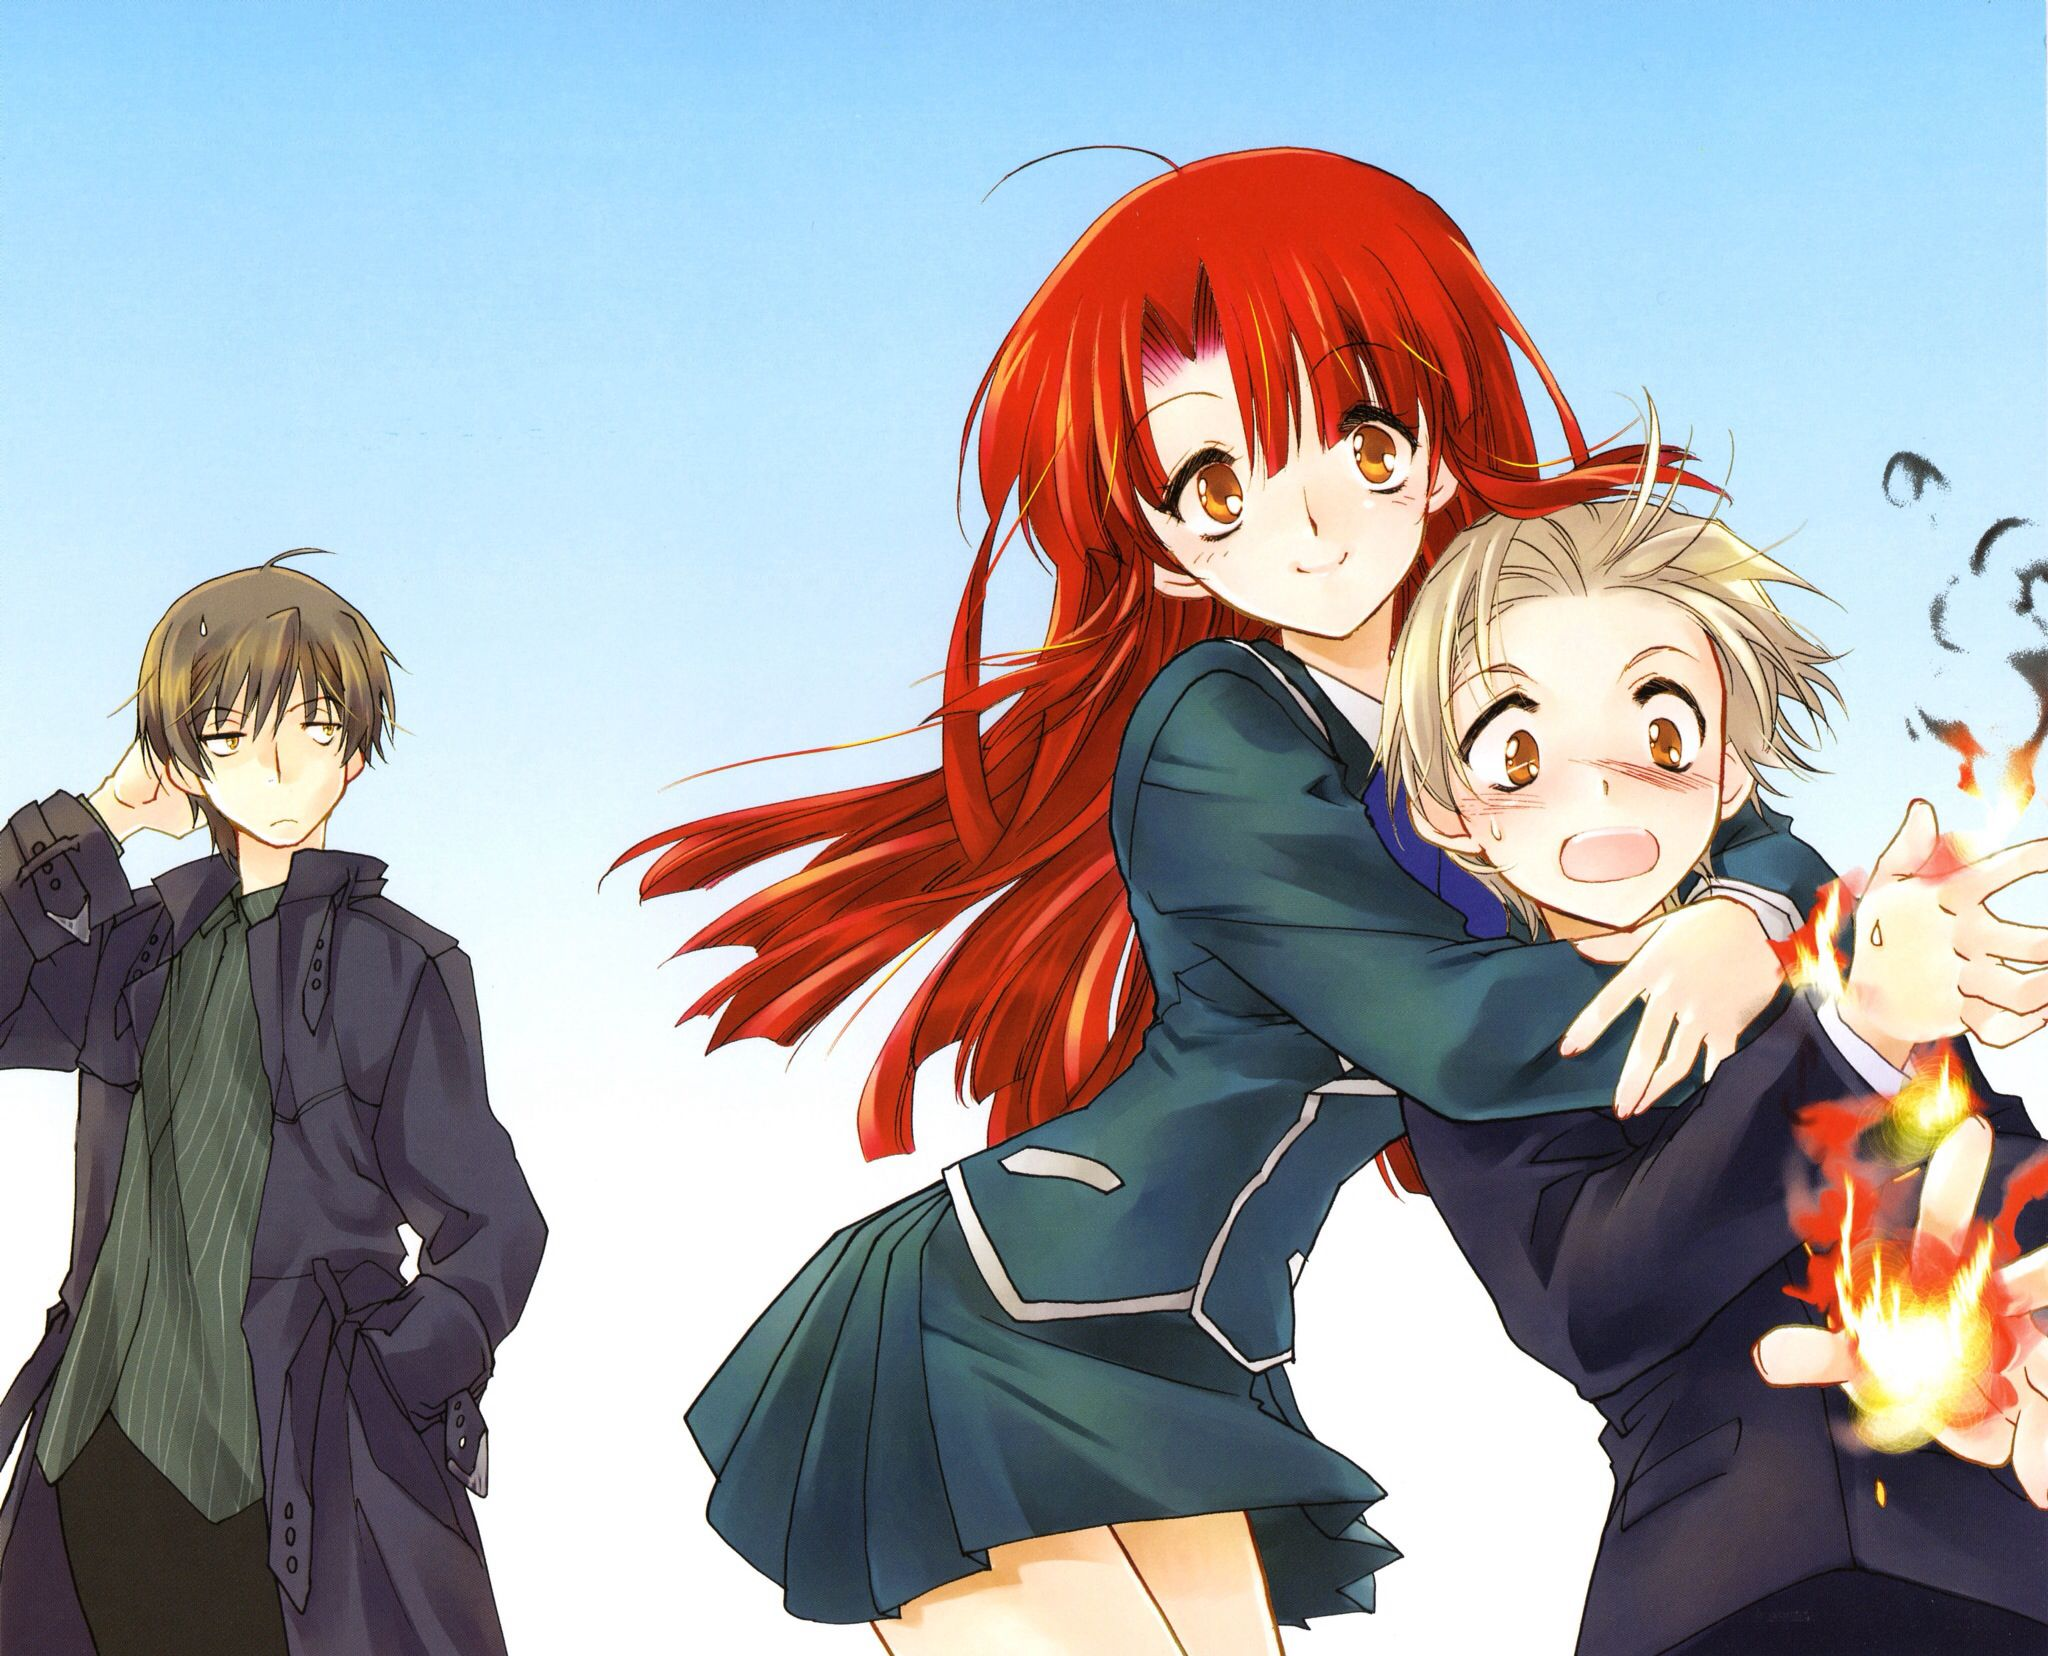 Kazuma X Ayano: Sister Hugging Baby Brother With Big Brother Watching